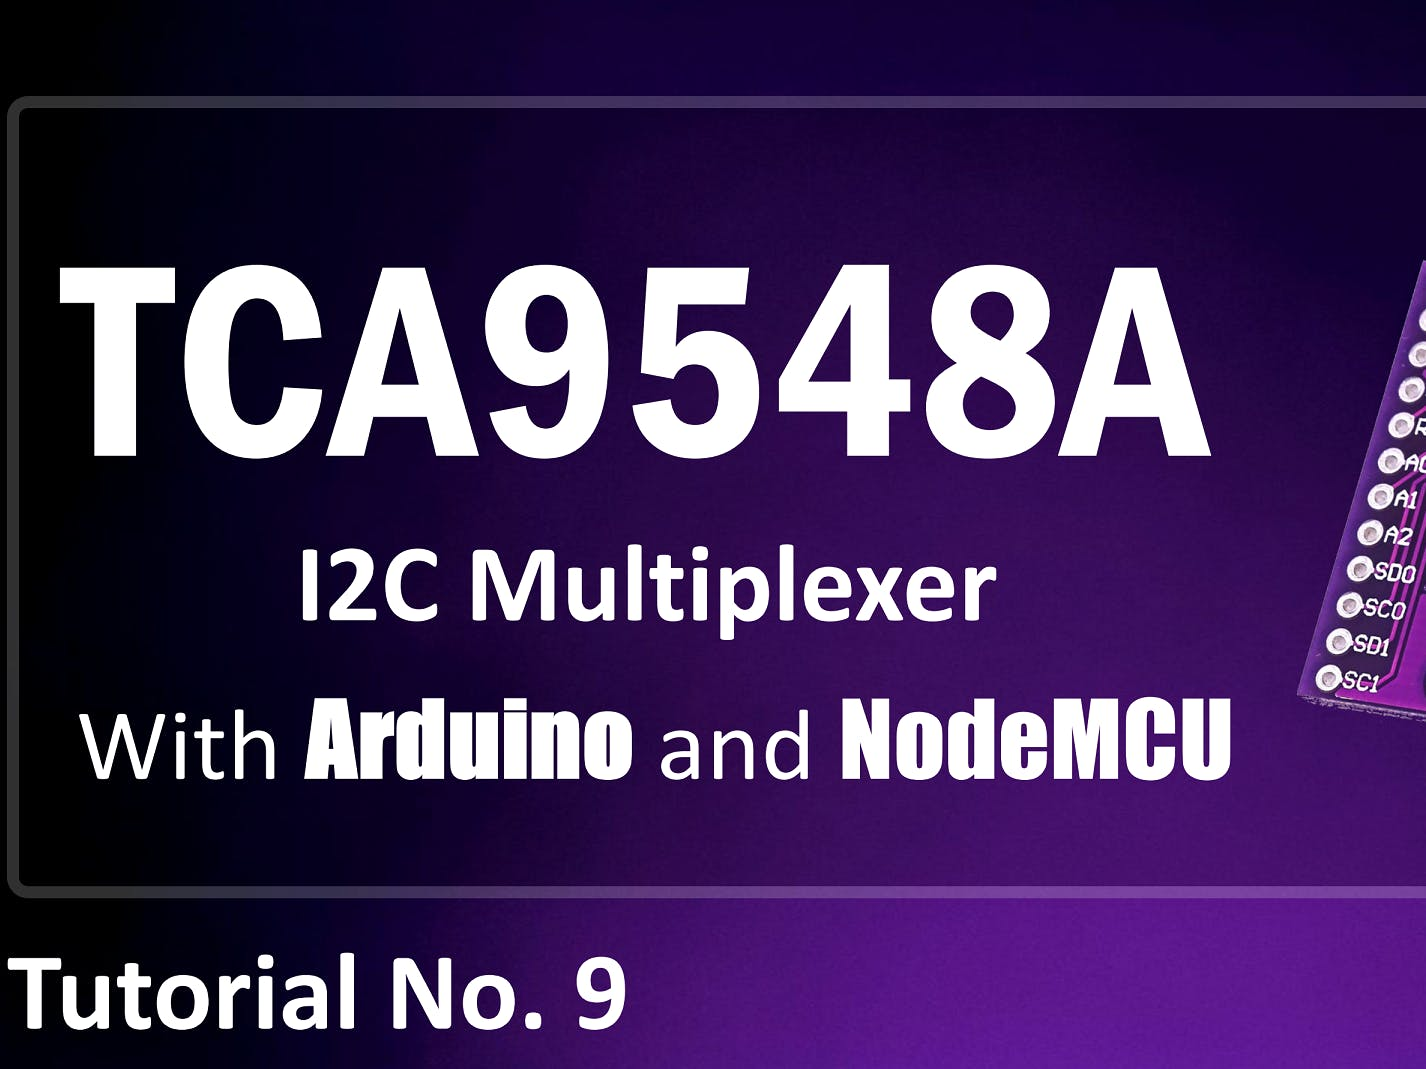 TCA9548A I2C Multiplexer Module - with Arduino and NodeMCU